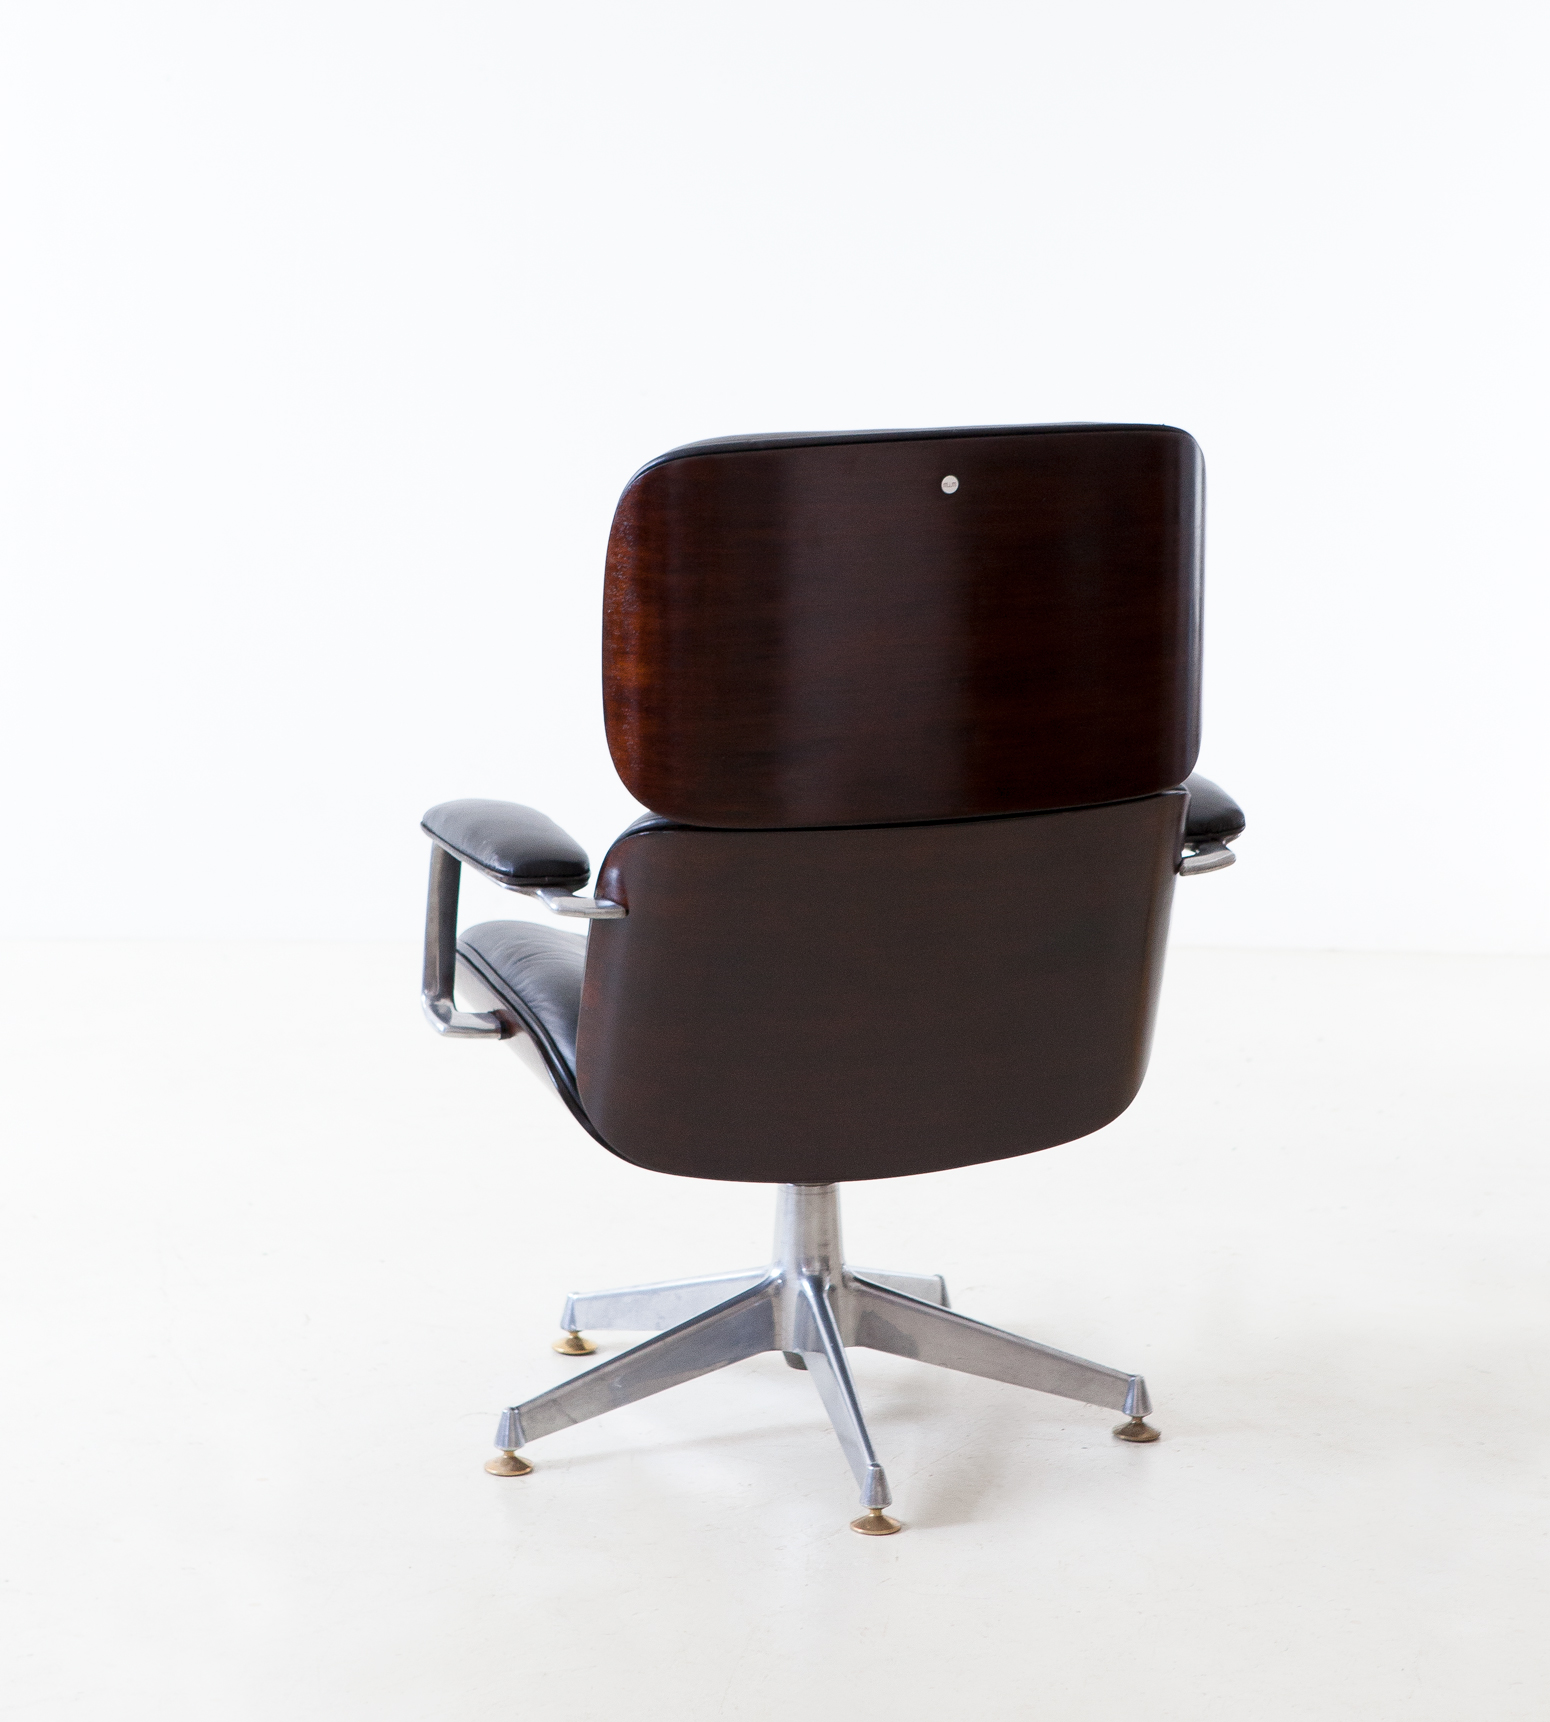 1950s-executive-desk-chair-by-Ico-Parisi-for-M.i.M.-11-SE332